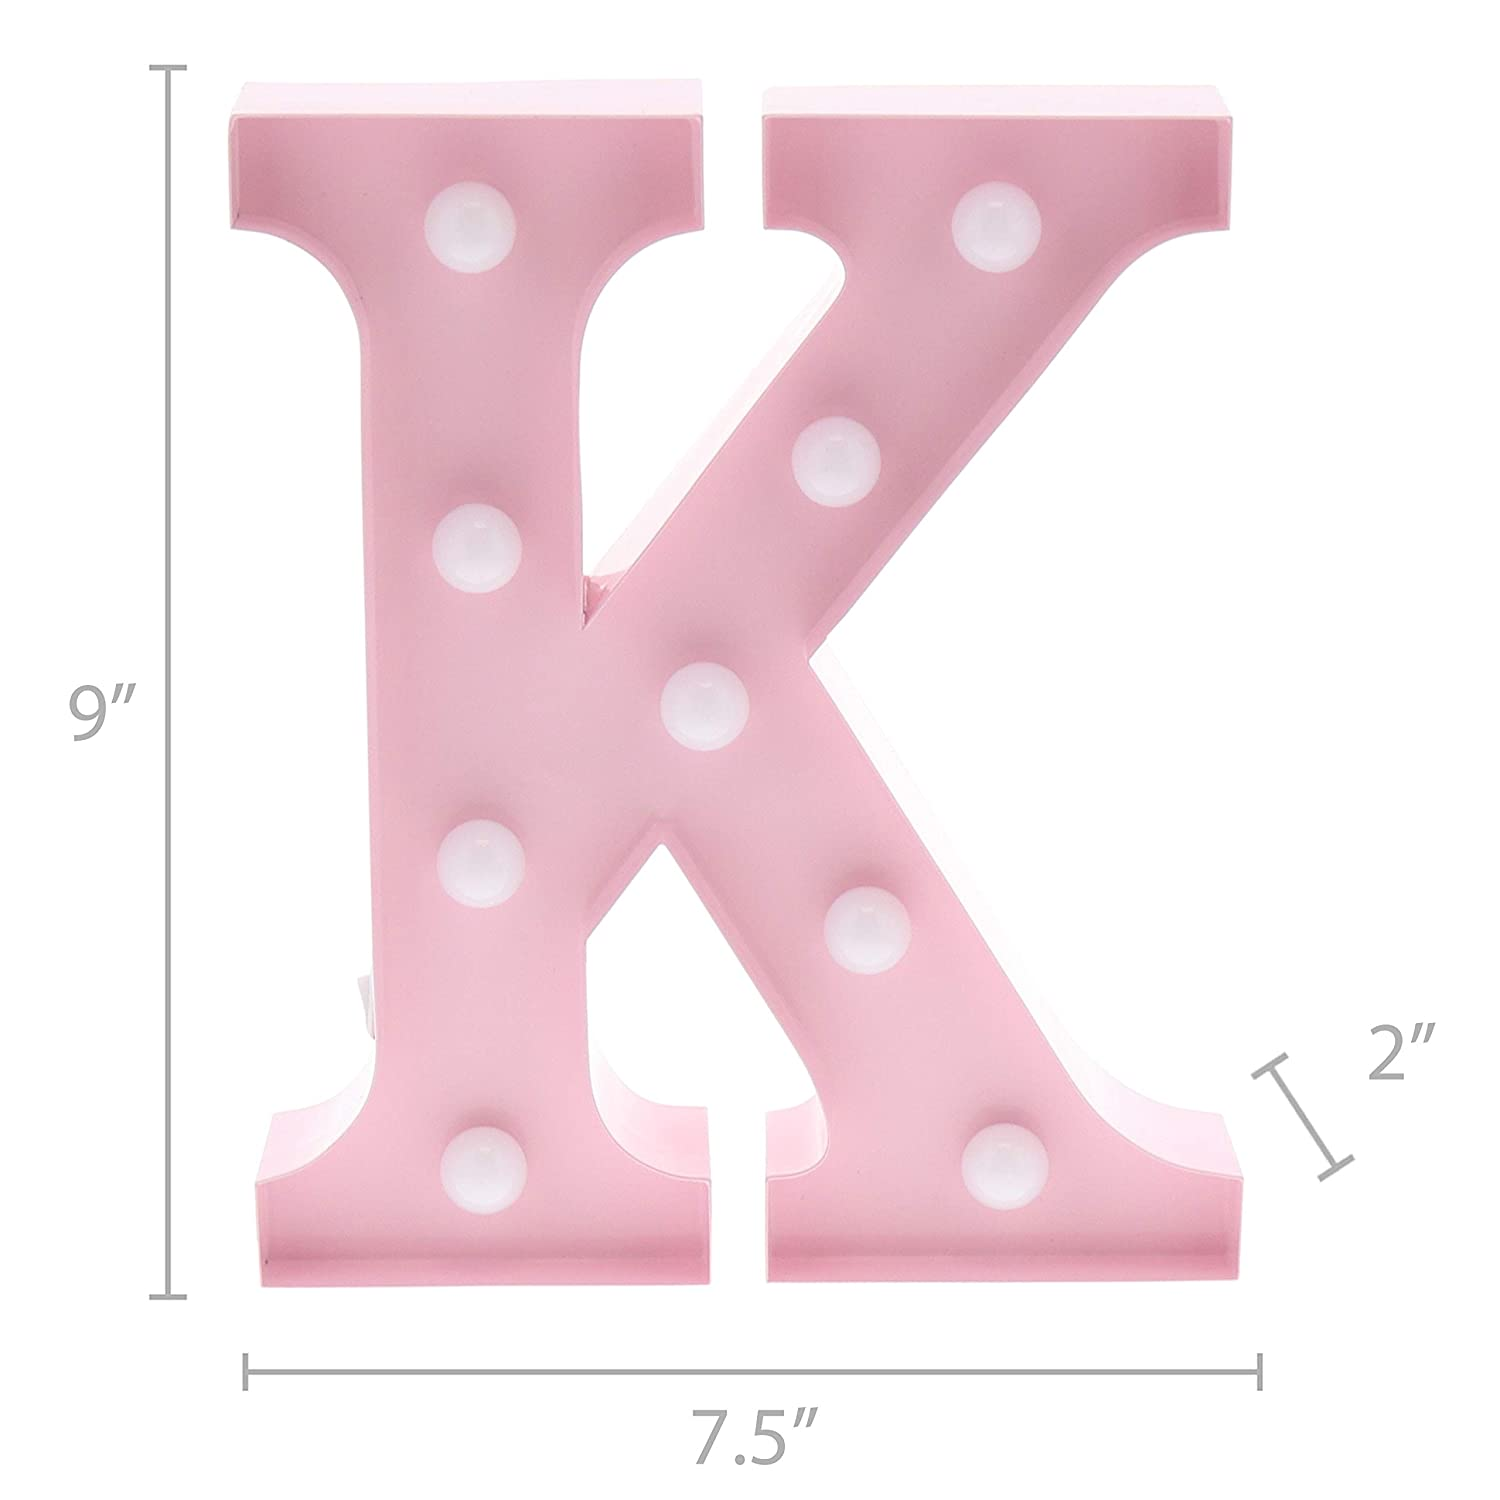 Amazon.com : Barnyard Designs Metal Marquee Letter K Light Up Wall ...